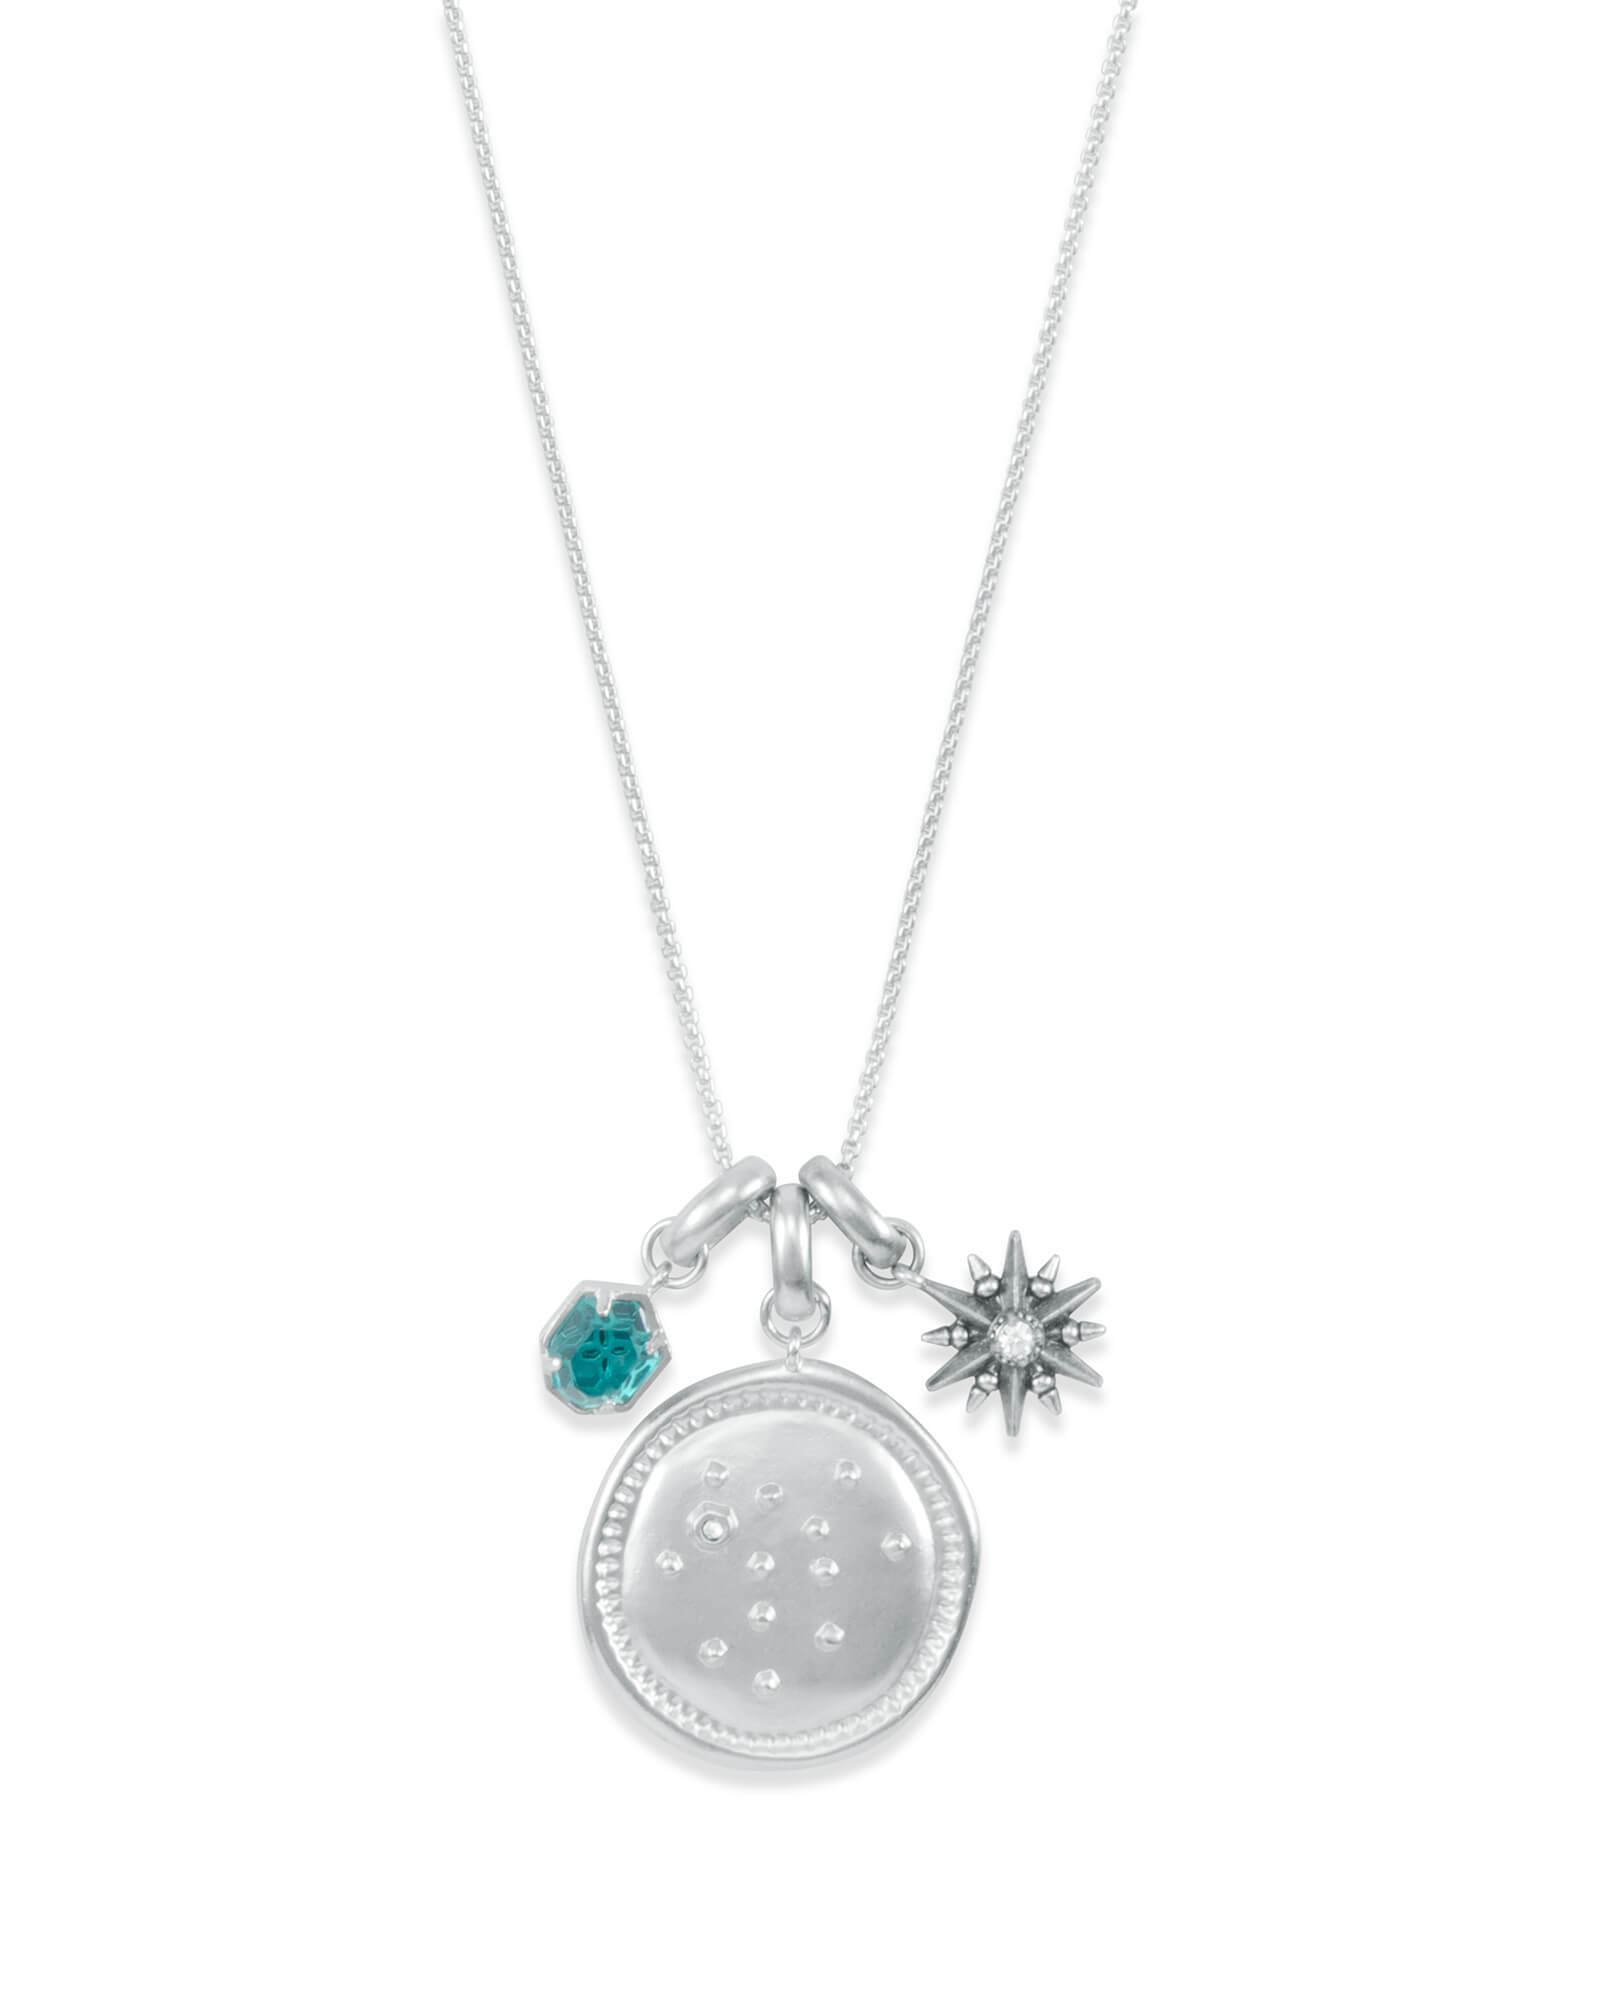 December Sagittarius Charm Necklace Set in Silver